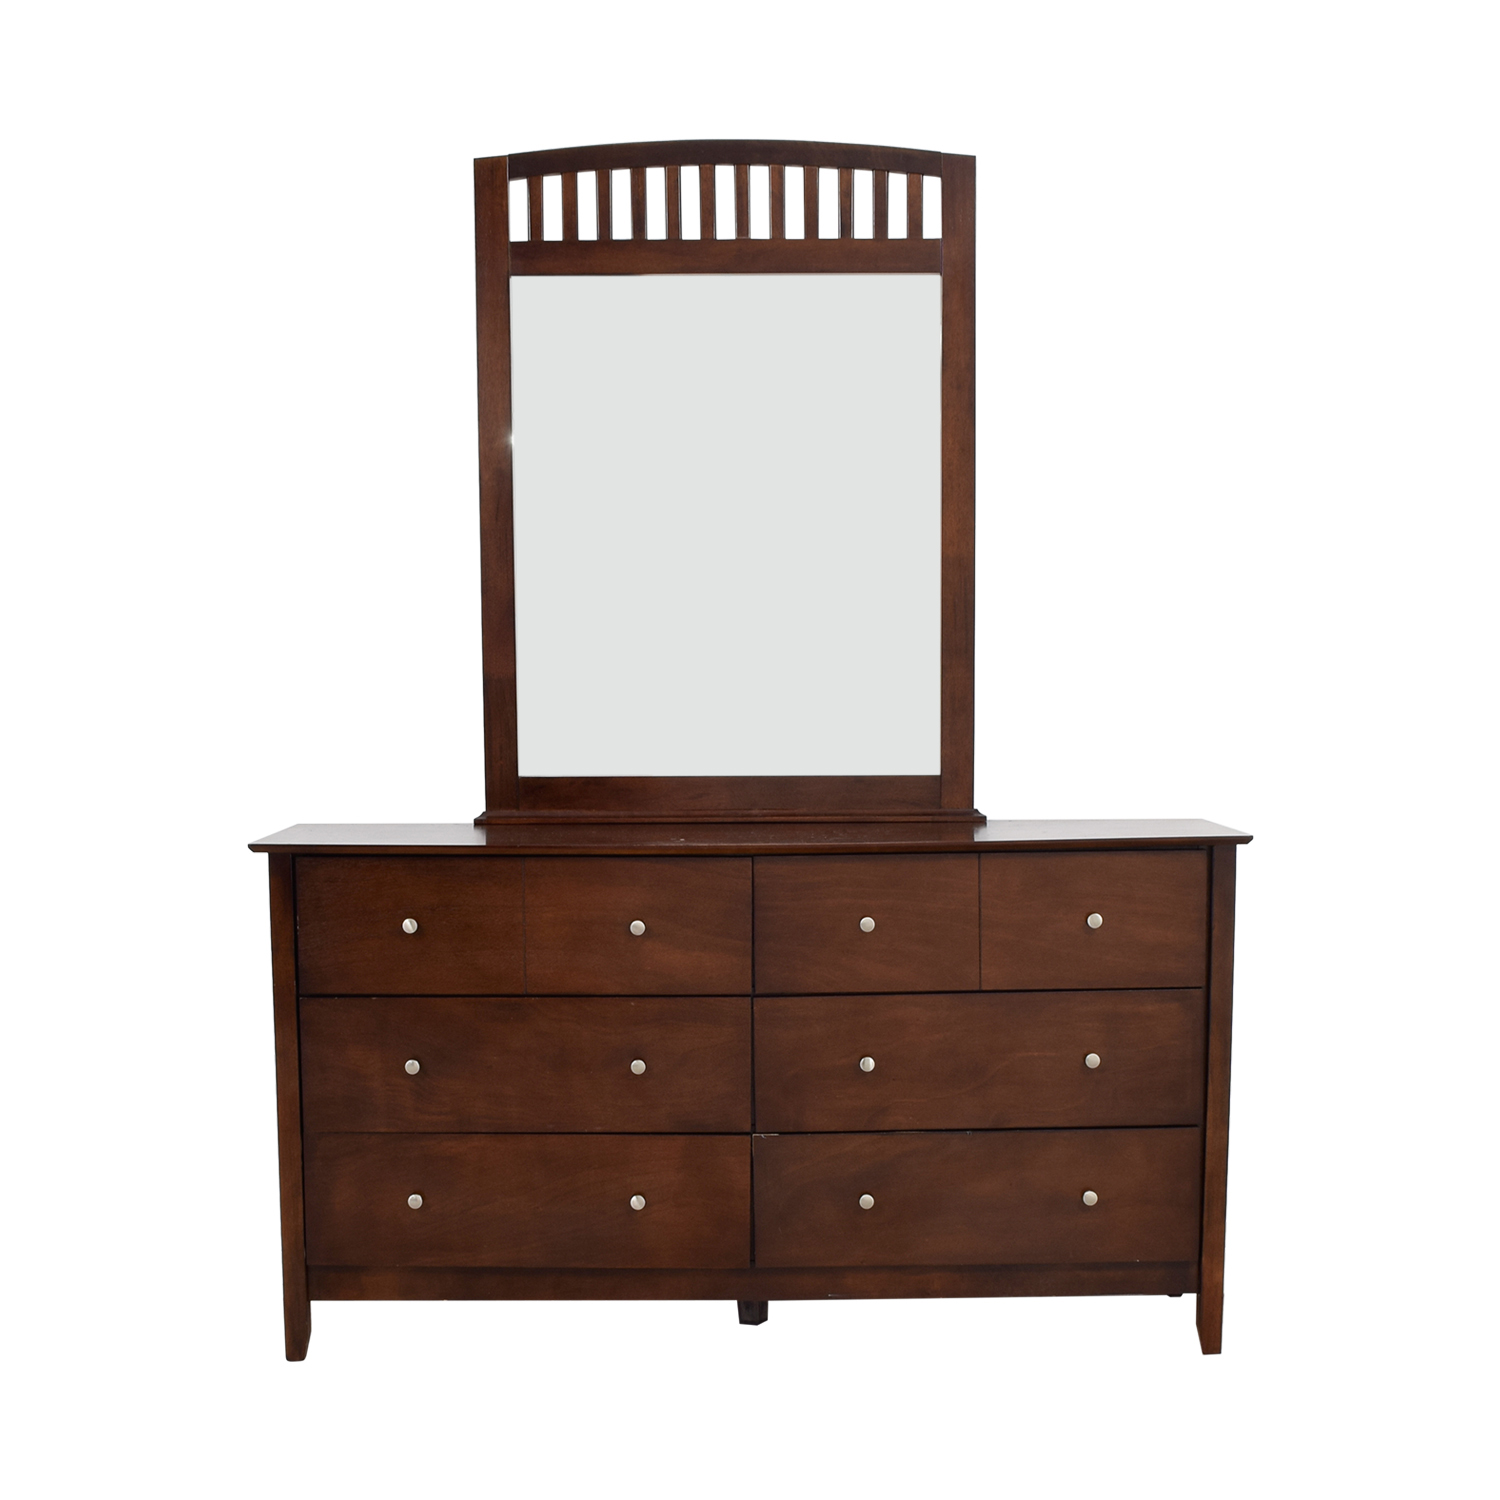 Bobs Furniture Bobs Furniture Eight-Drawer Dresser with Caged Mirror